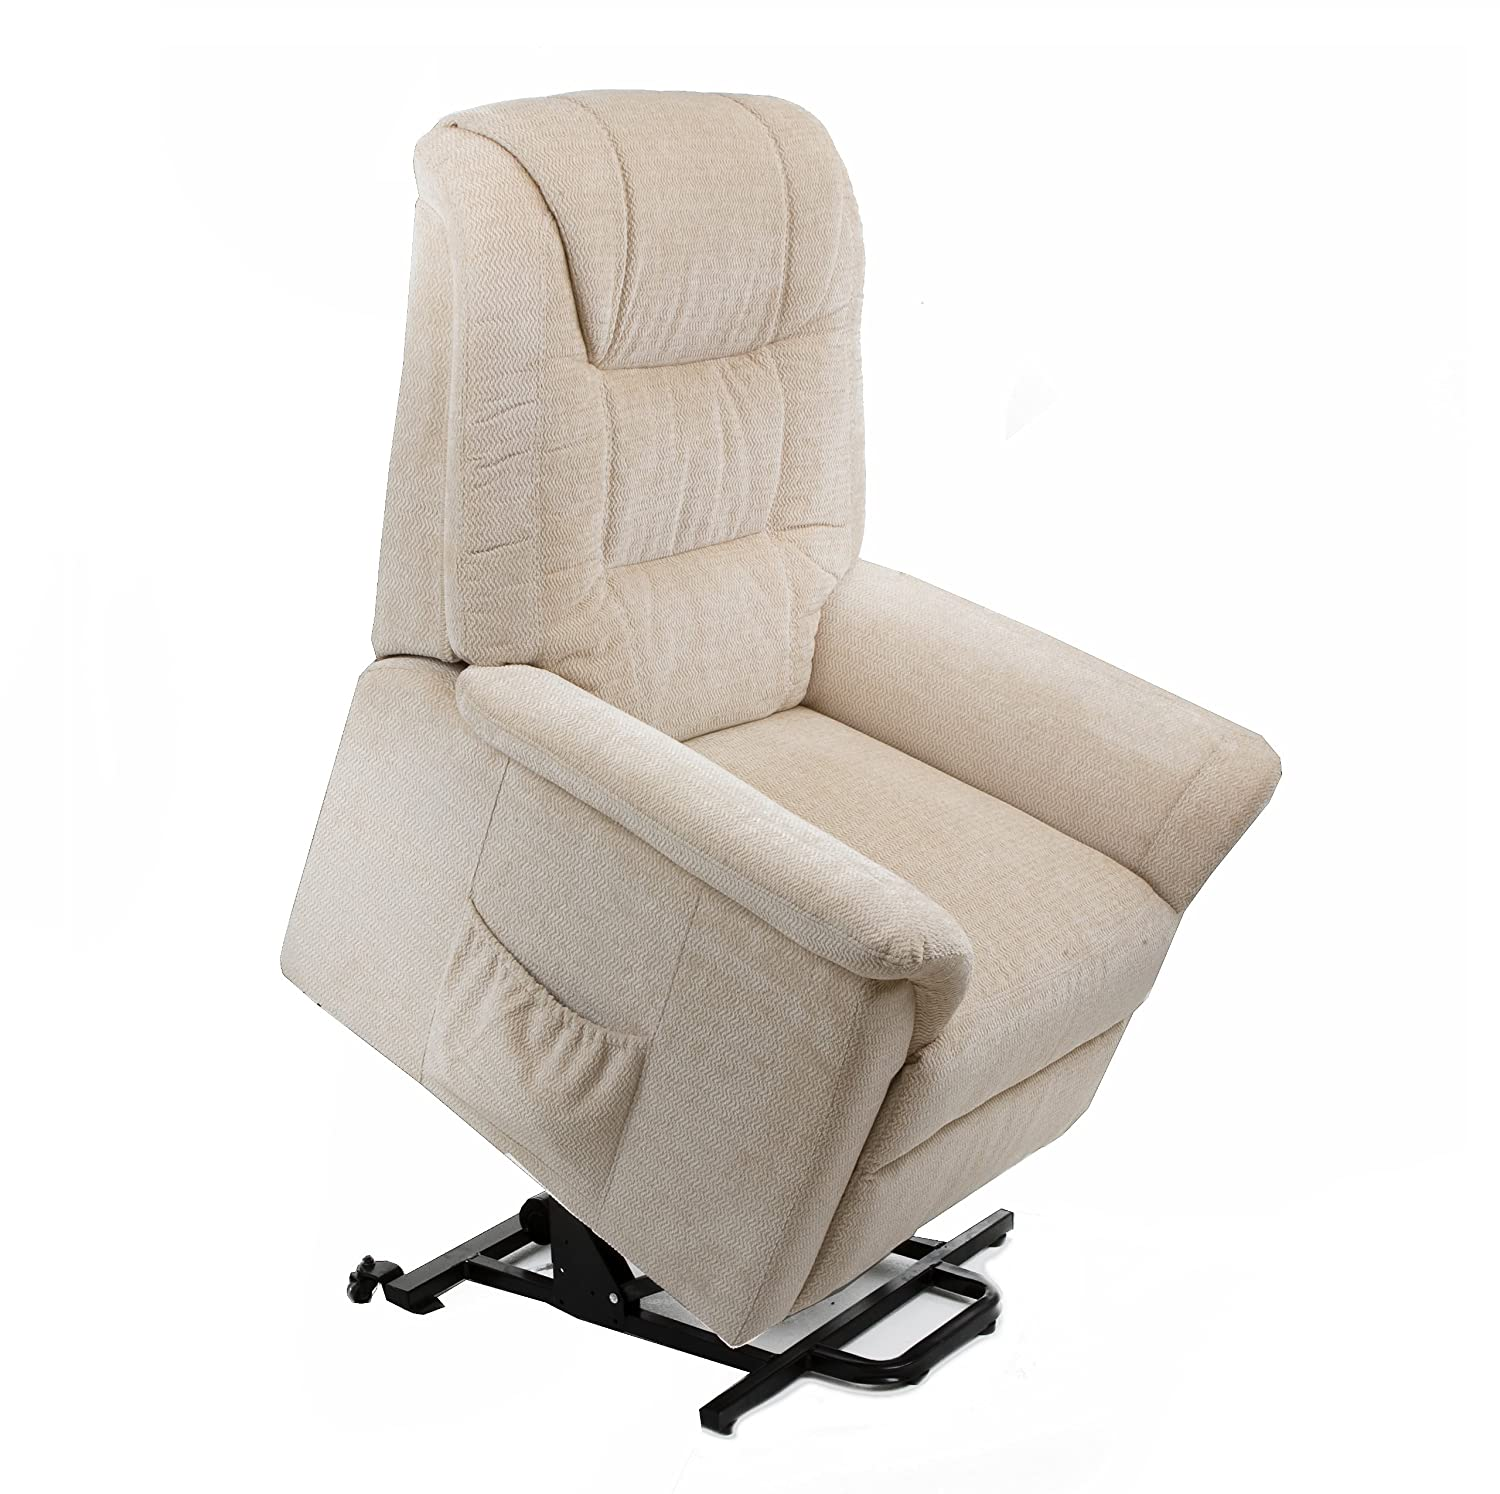 Riva Dual motor electric riser and recliner chair - choice of colours (Beige Fabric) rise and recline mobility lift chair Amazon.co.uk Office Products  sc 1 st  Amazon UK & Riva Dual motor electric riser and recliner chair - choice of ... islam-shia.org